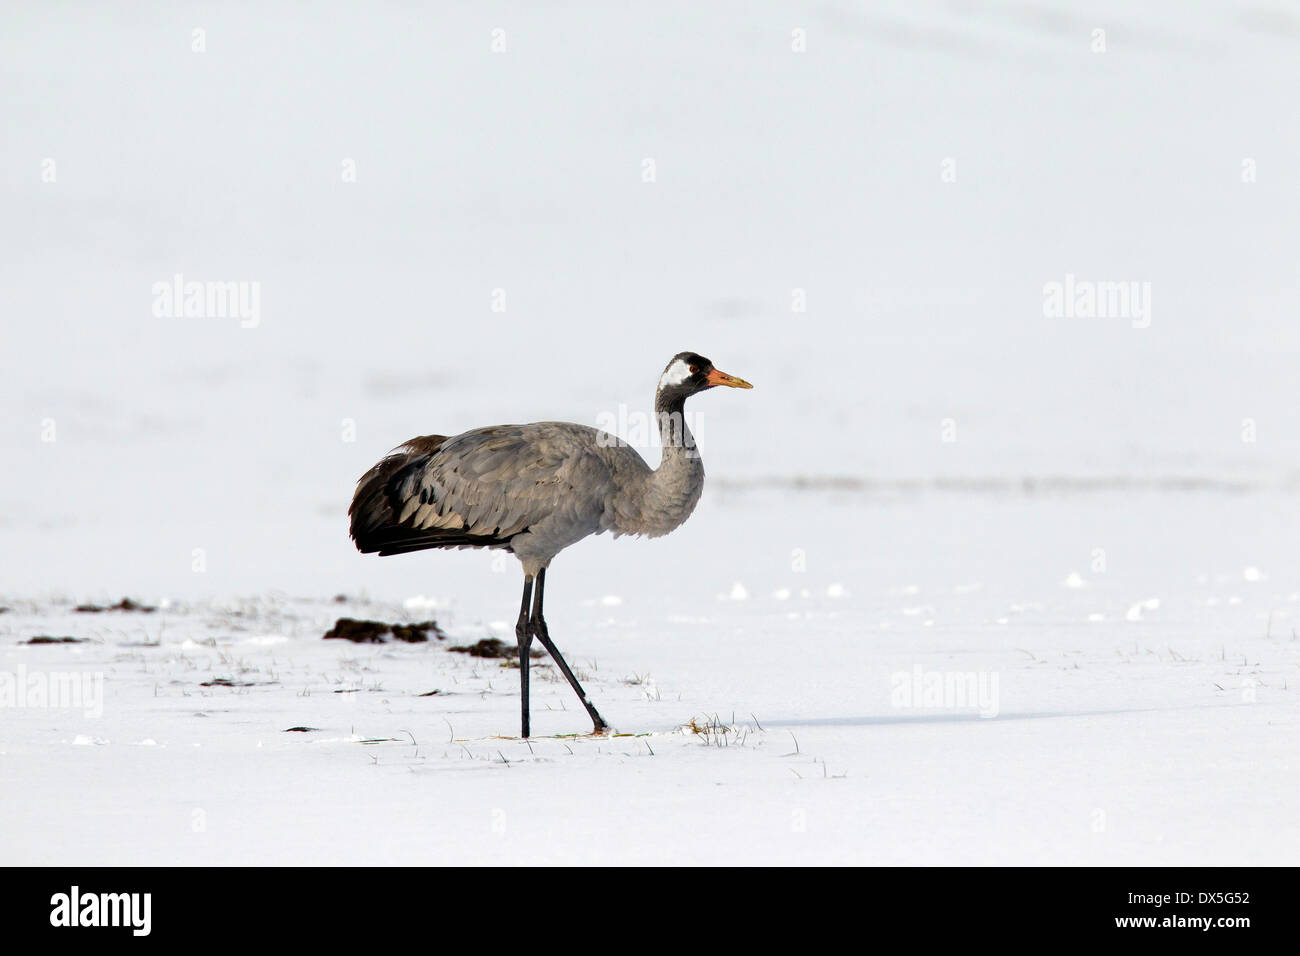 Common crane / Eurasian crane (Grus grus) in the snow in early spring Stock Photo